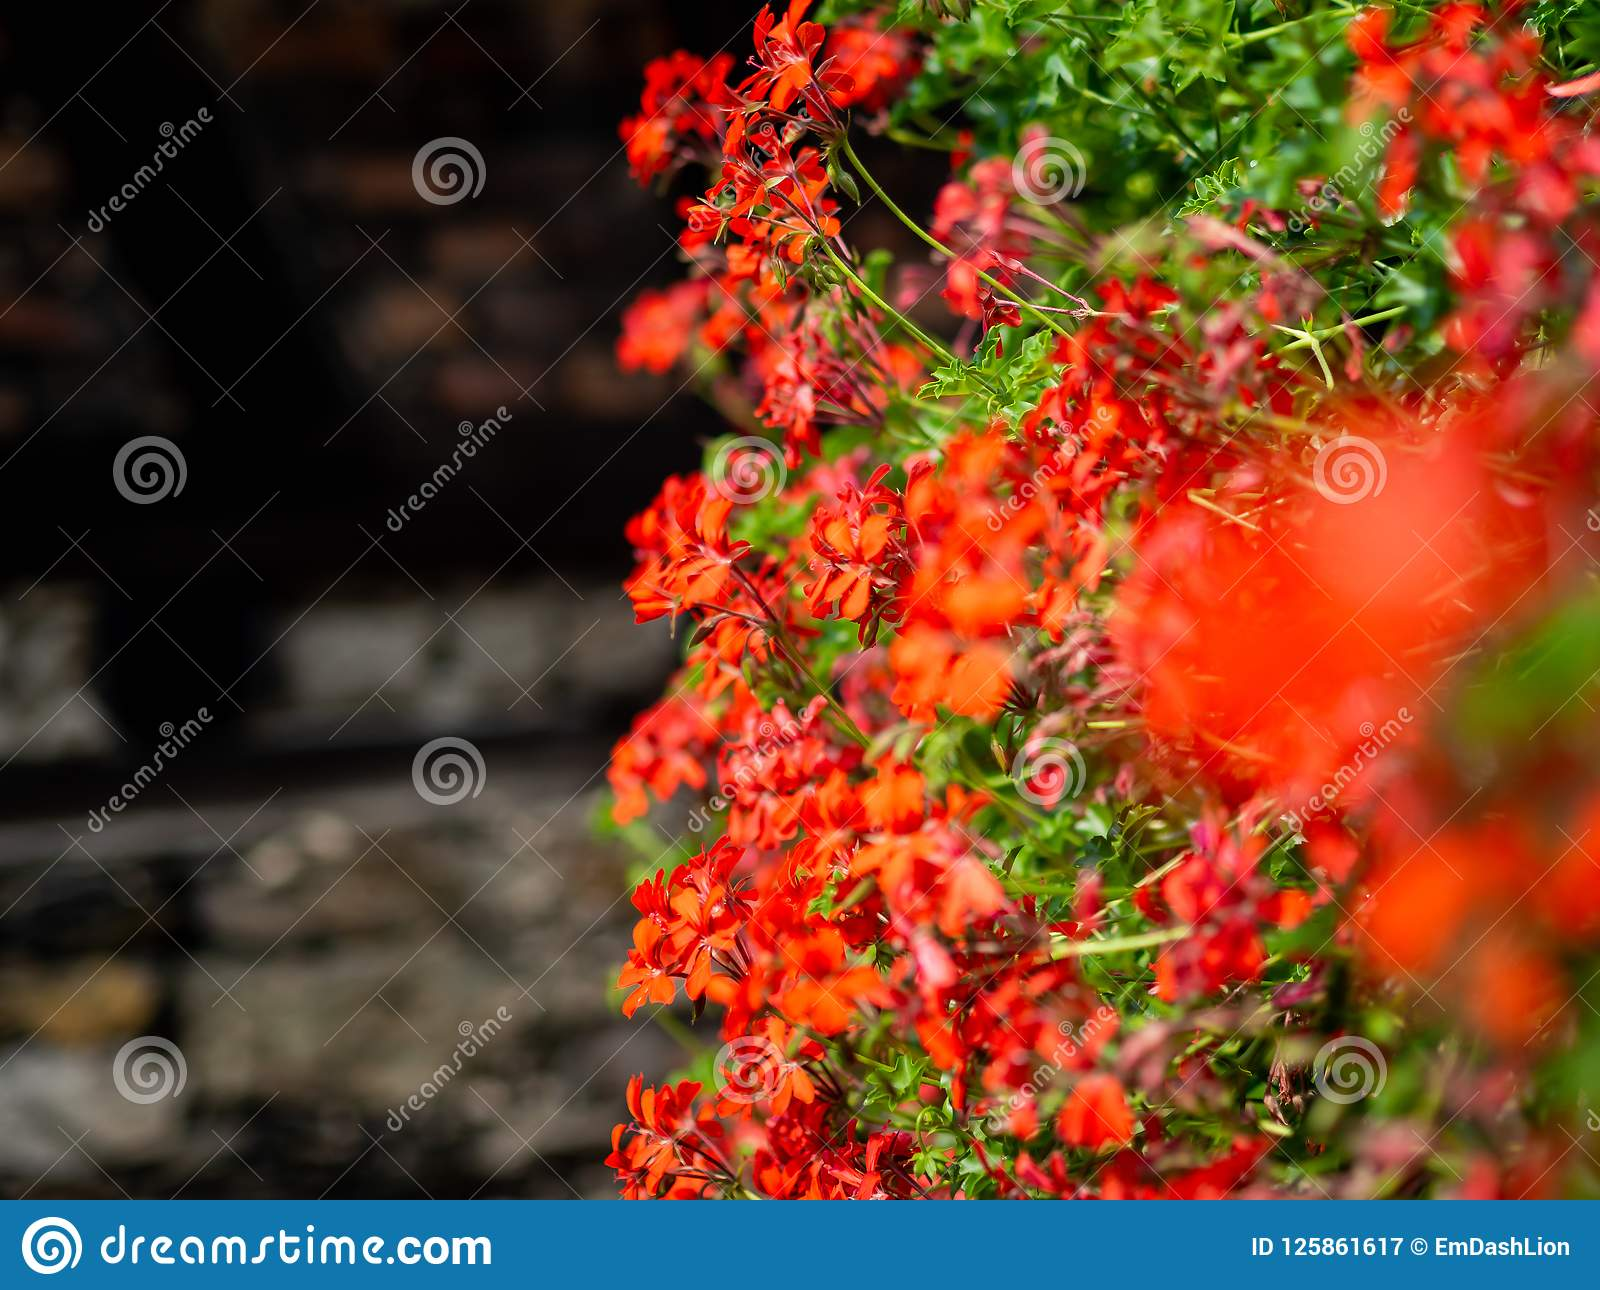 Red flowers along a wall with stylistic blur effect